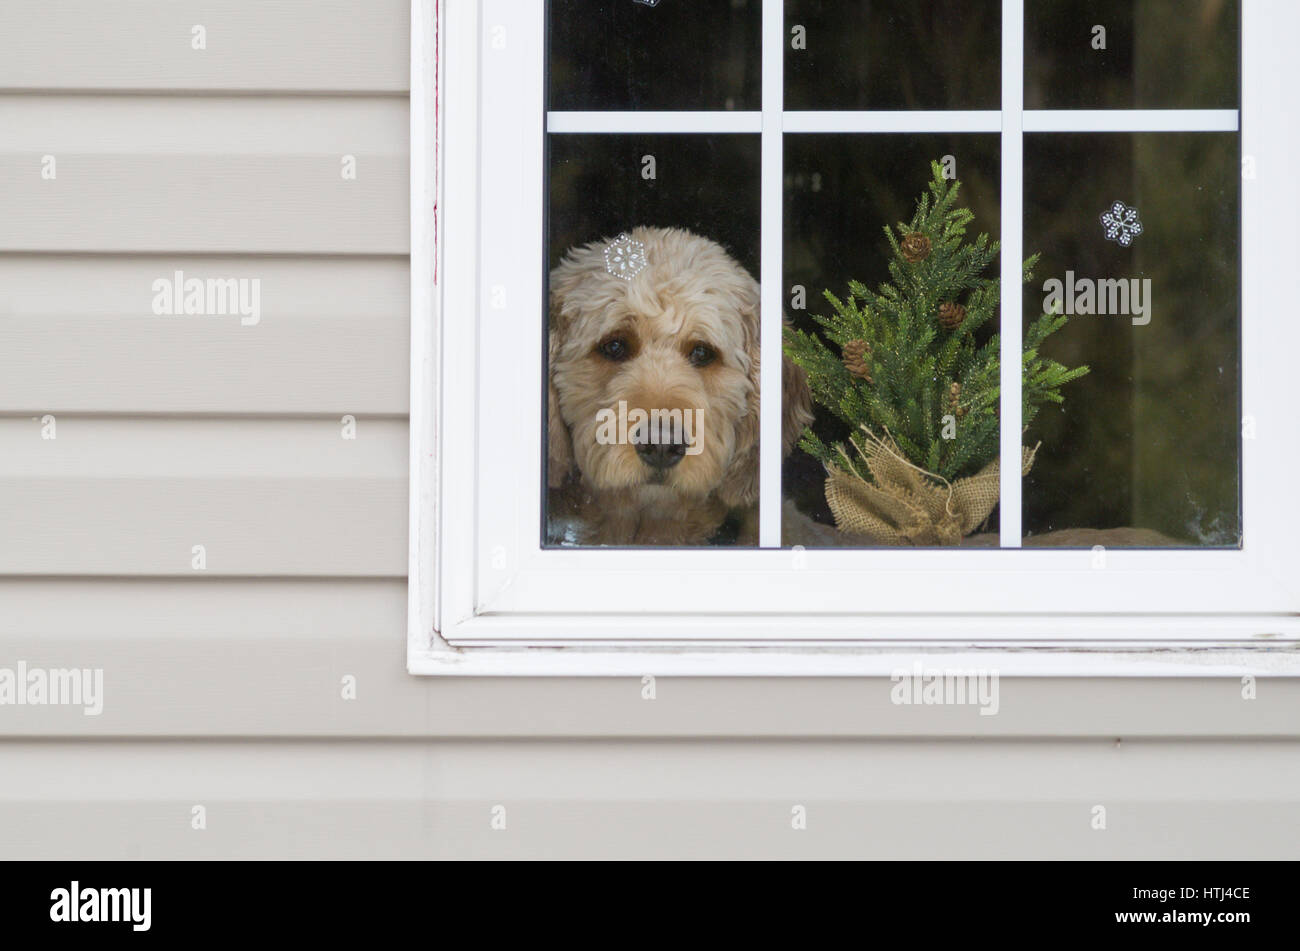 How much is that doggy in the window? - Stock Image